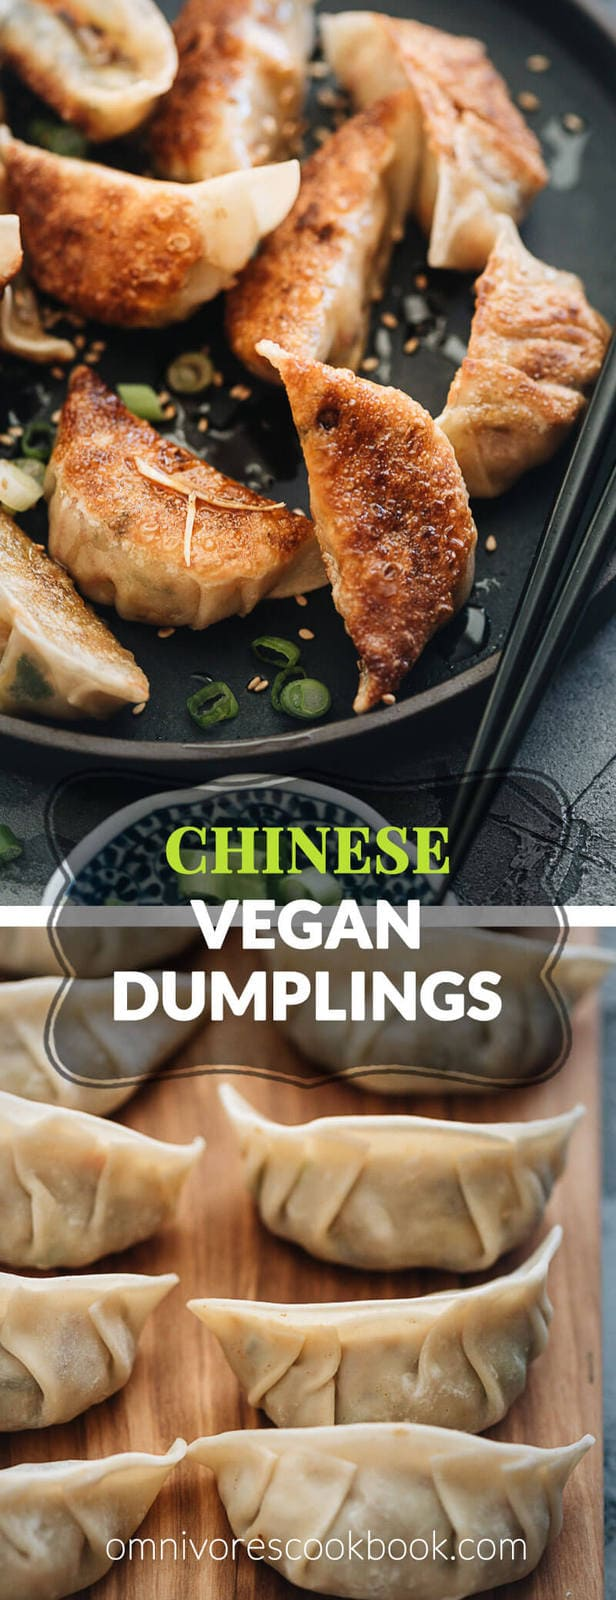 Homemade Vegan Dumplings - The dumpling filling has a well-balanced texture with veggies, tofu, and rice vermicelli. It's seasoned with plenty of aromatics, soy sauce, and just a dash of curry powder to enhance its richness. #chinese #vegetarian